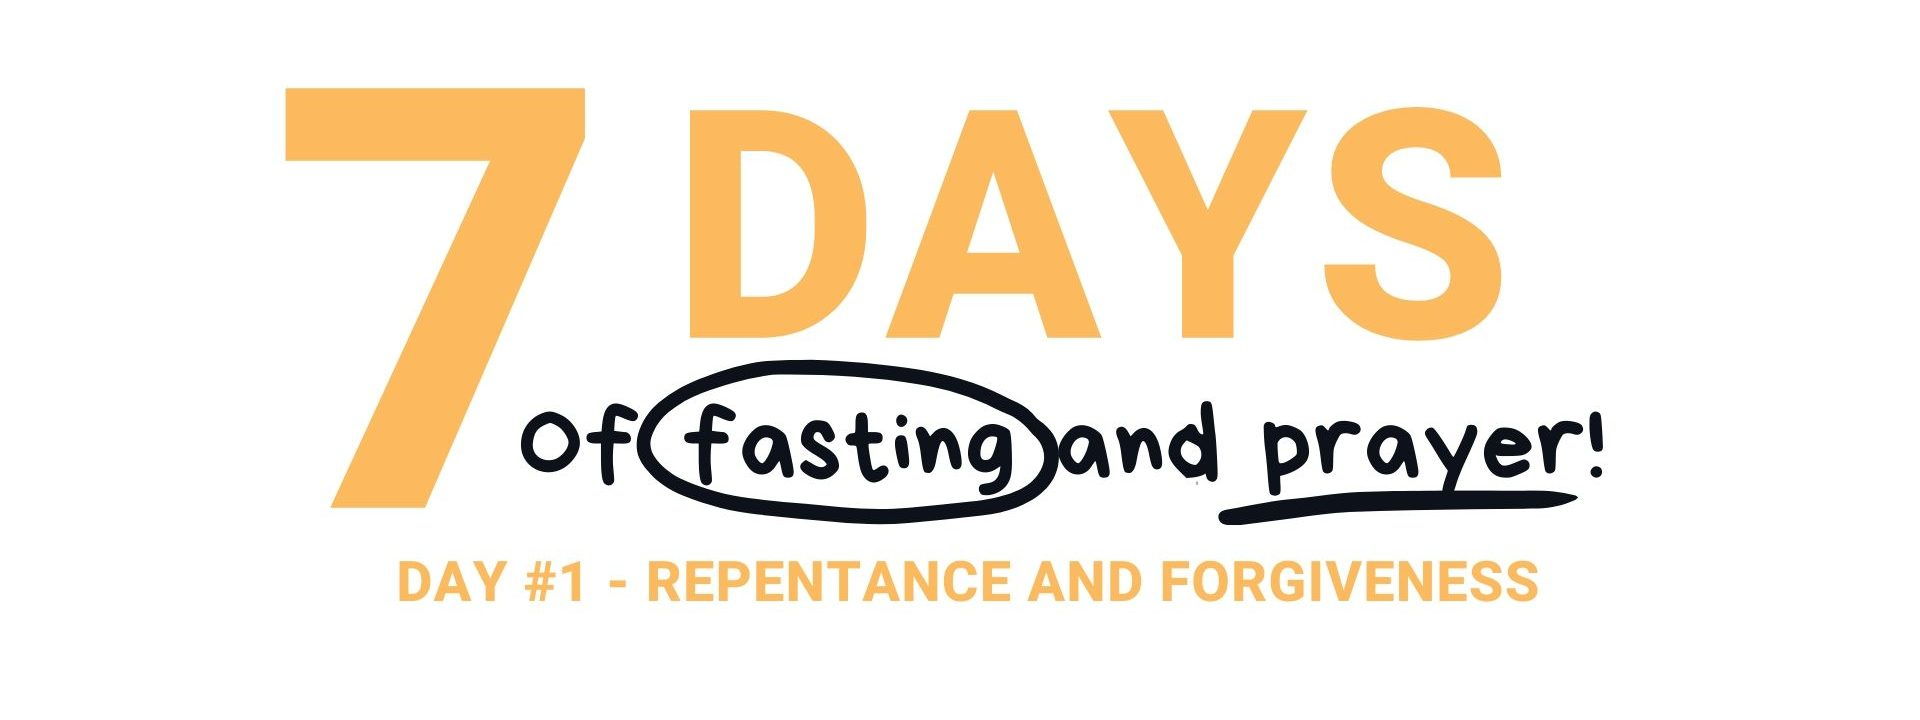 Day 1 Fast & Pray Repentance and Forgiveness